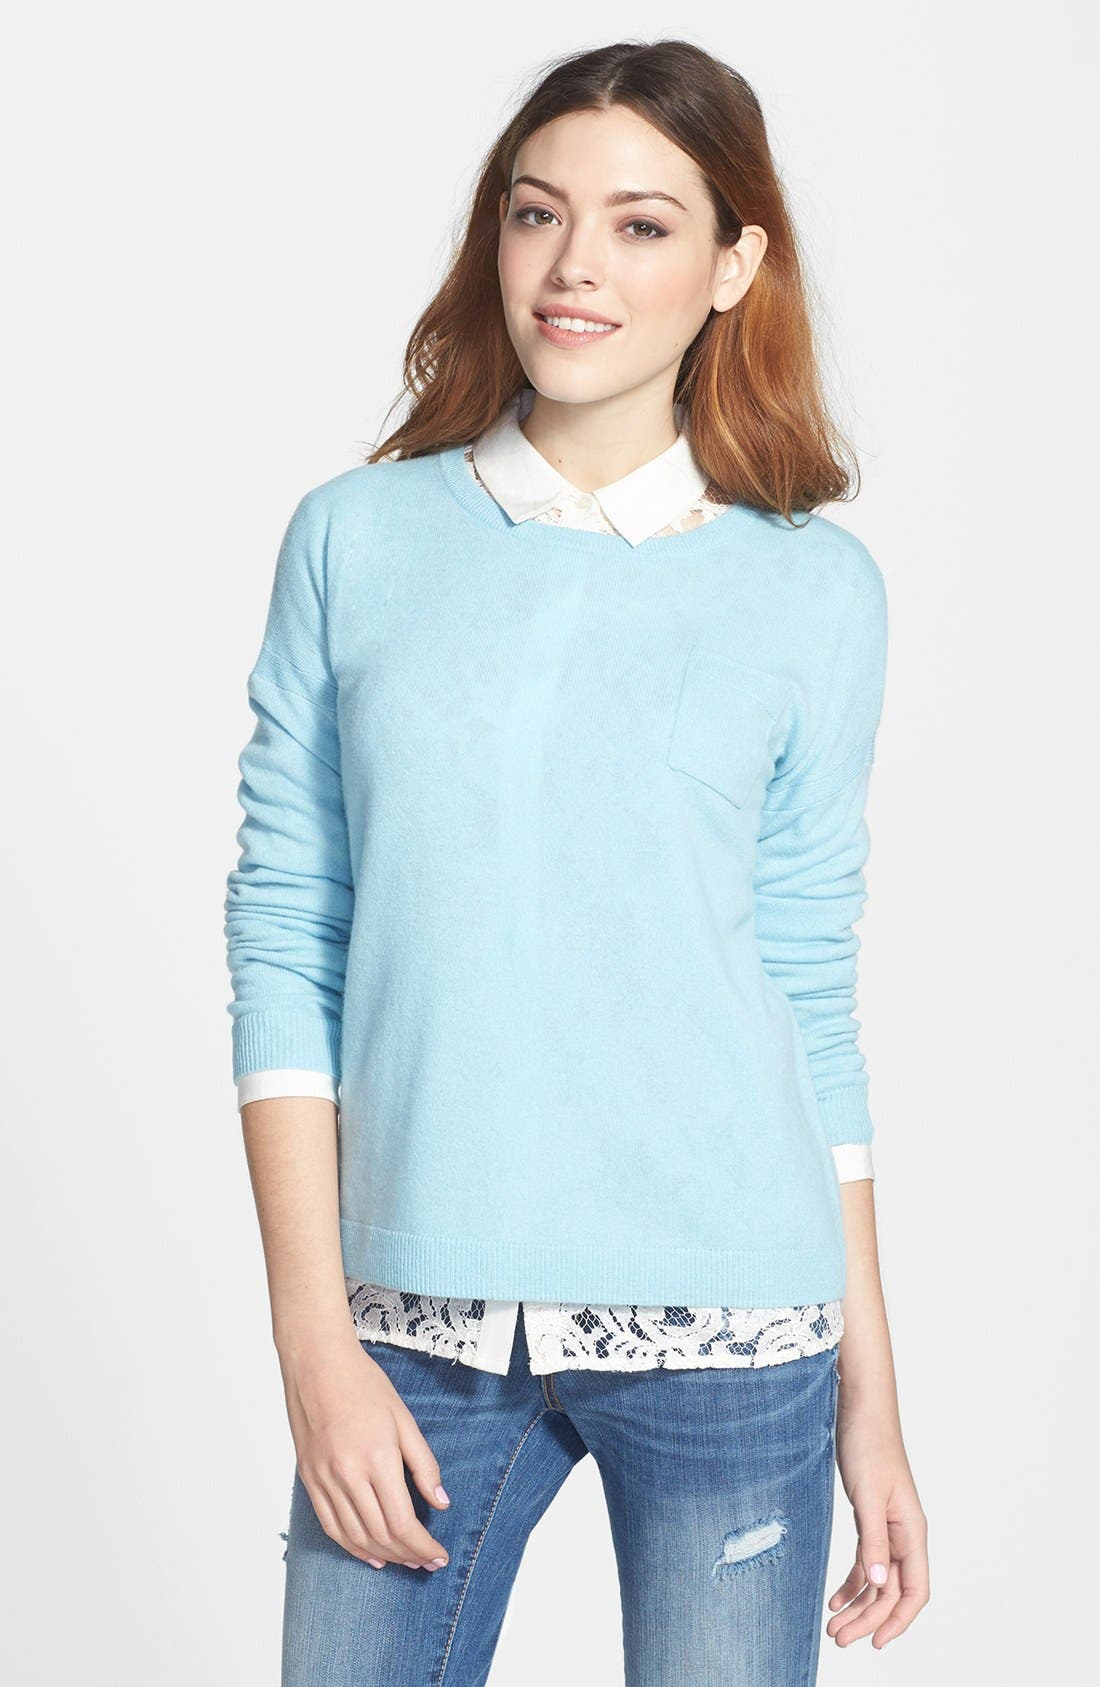 Alternate Image 1 Selected - Halogen® Lightweight Cashmere Crewneck Sweater with Pocket